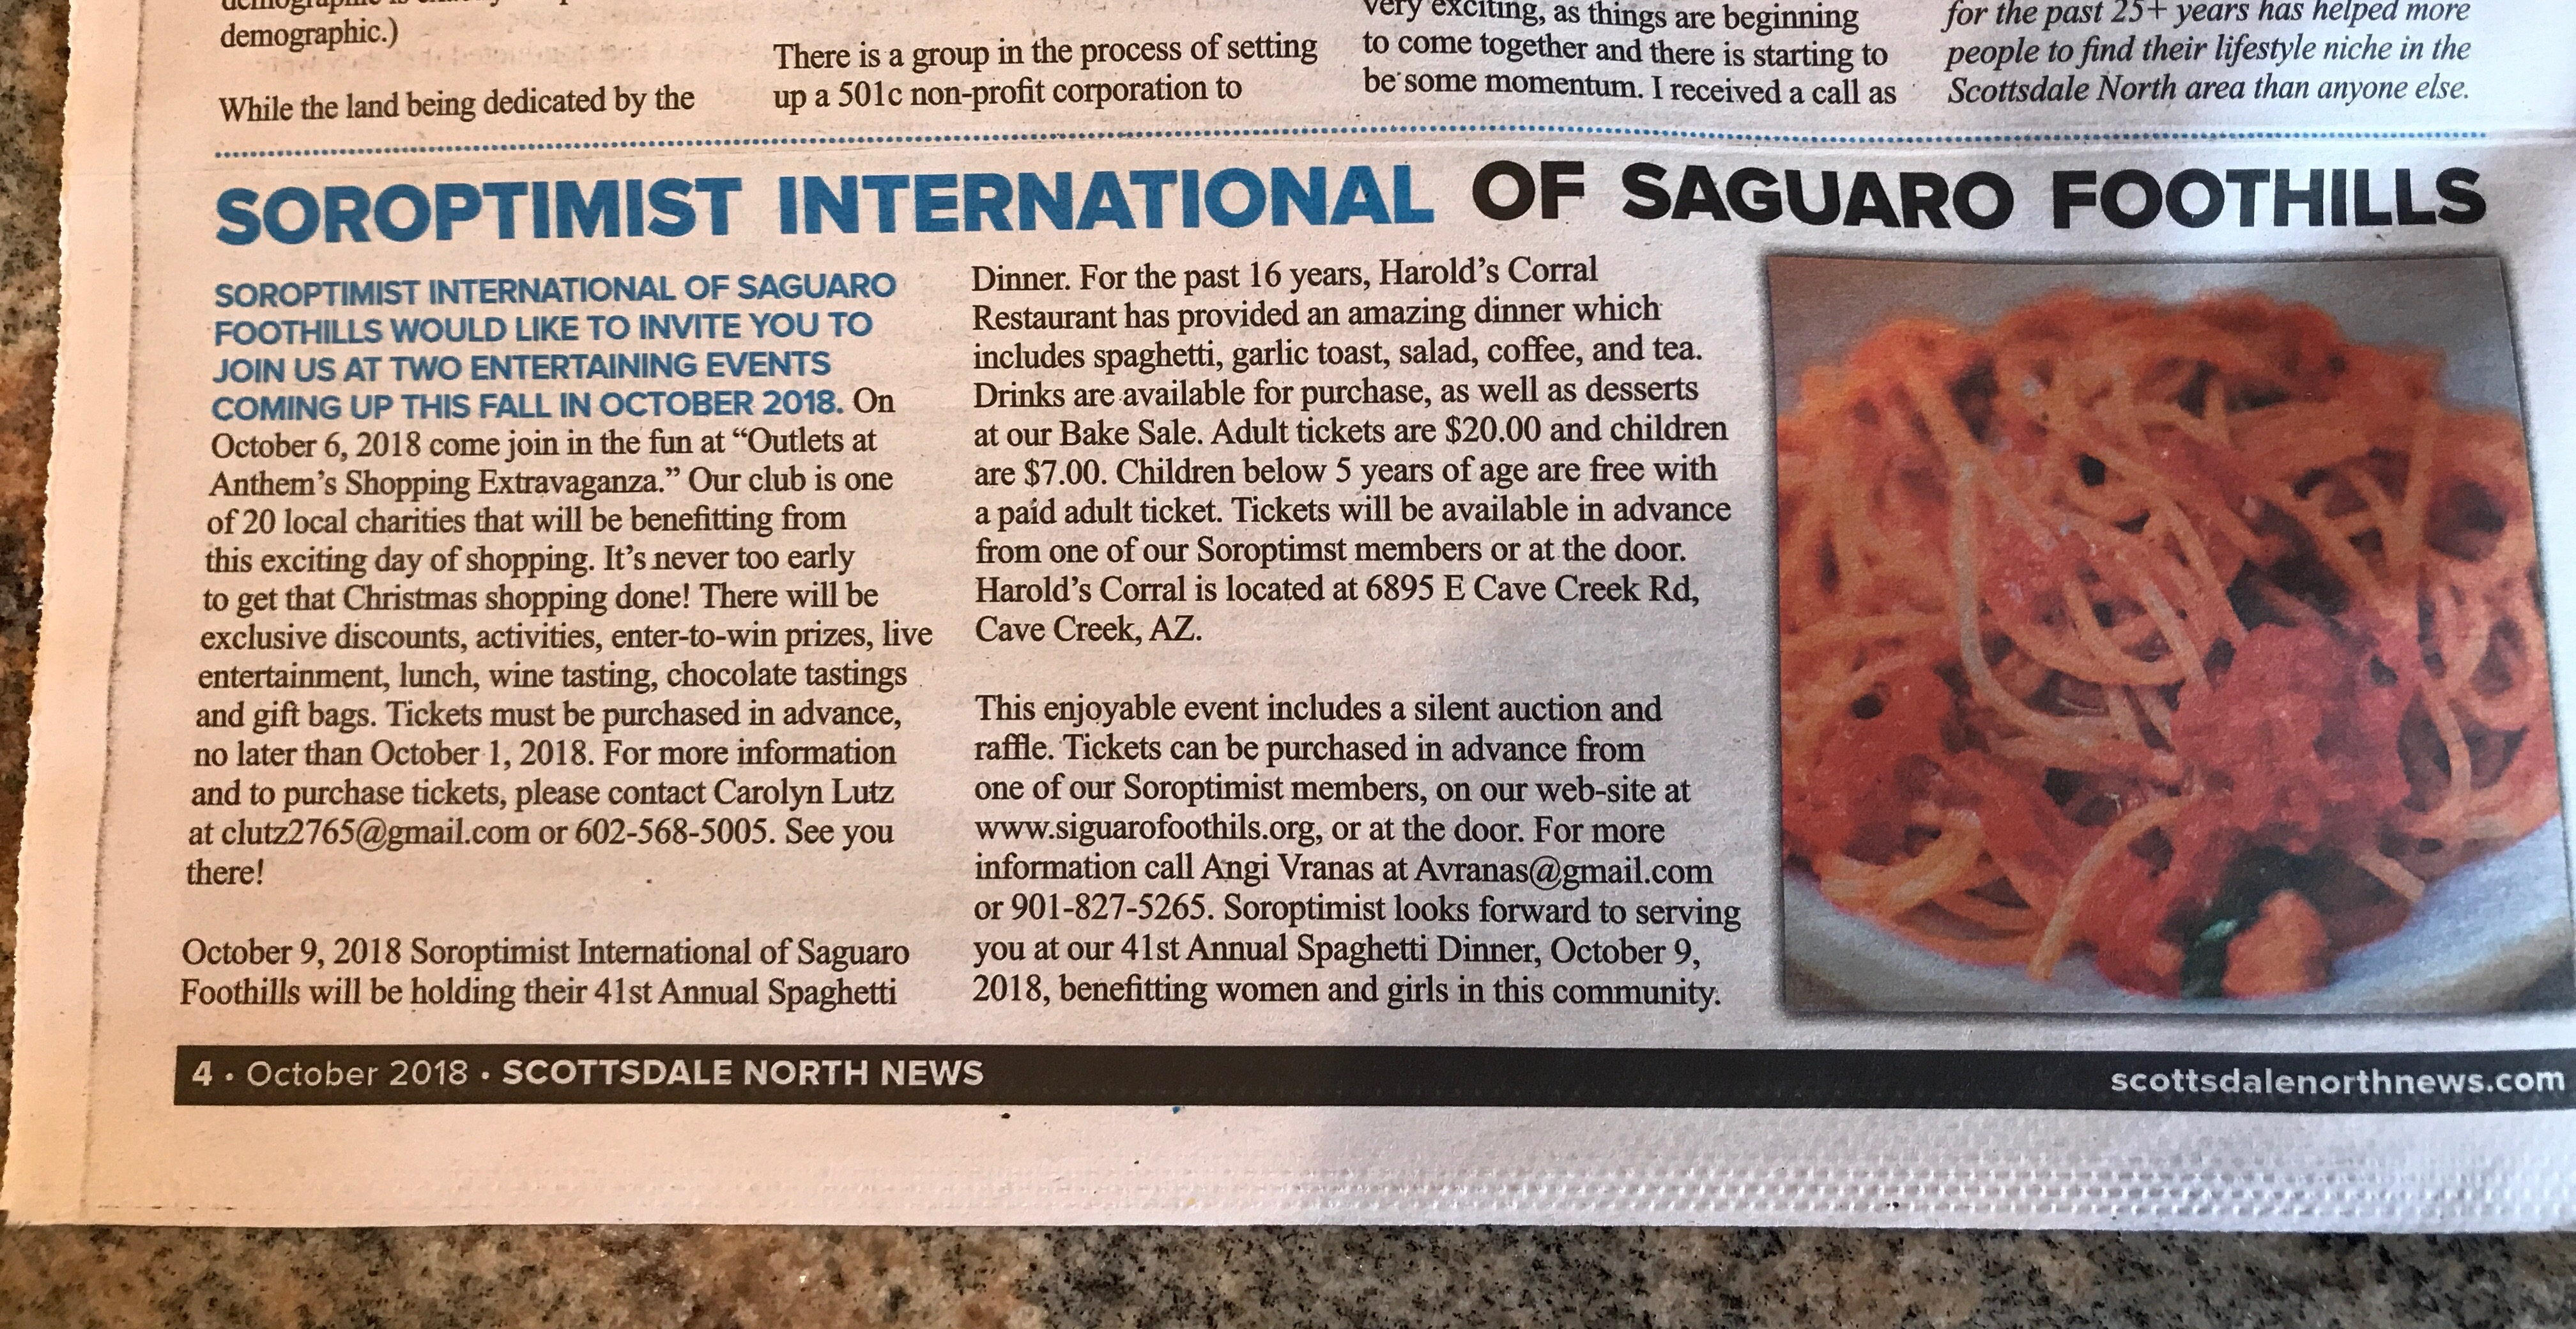 10/18 Spaghetti Dinner article in Scottsdale North News